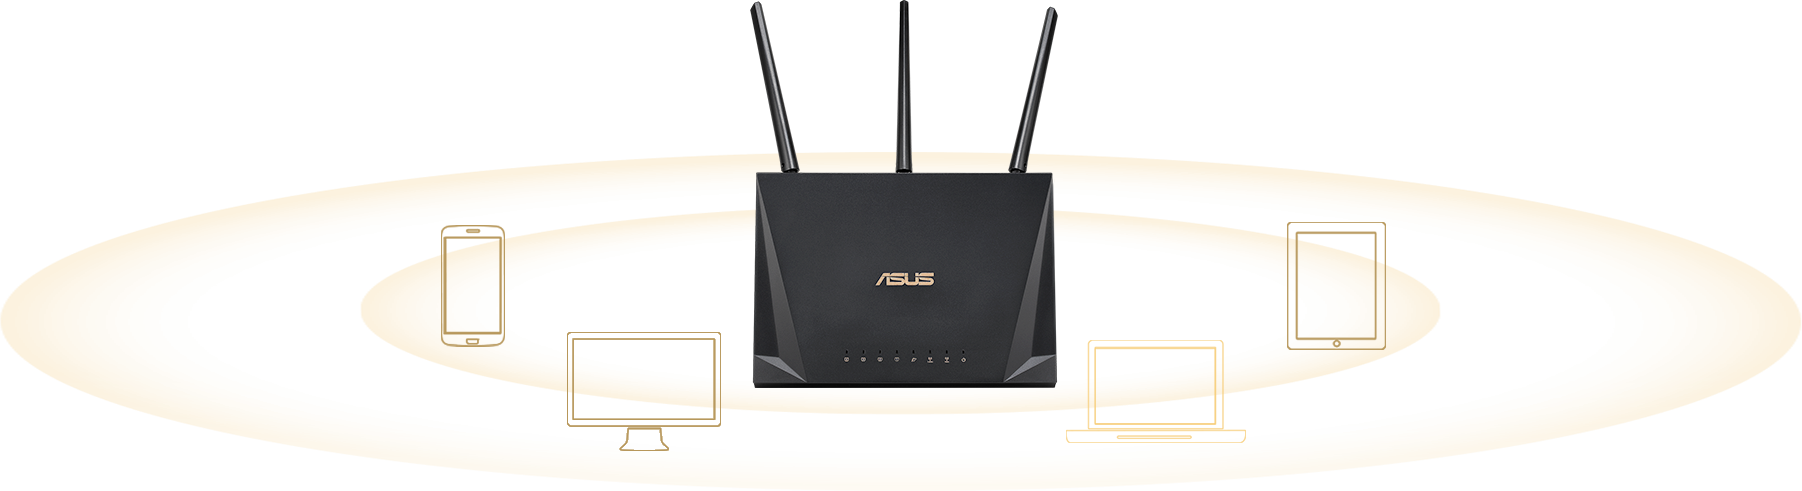 ASUS RT-AC65P comes with Multi-user MIMO, allowing RT-AC65P to serve multi-device at a time